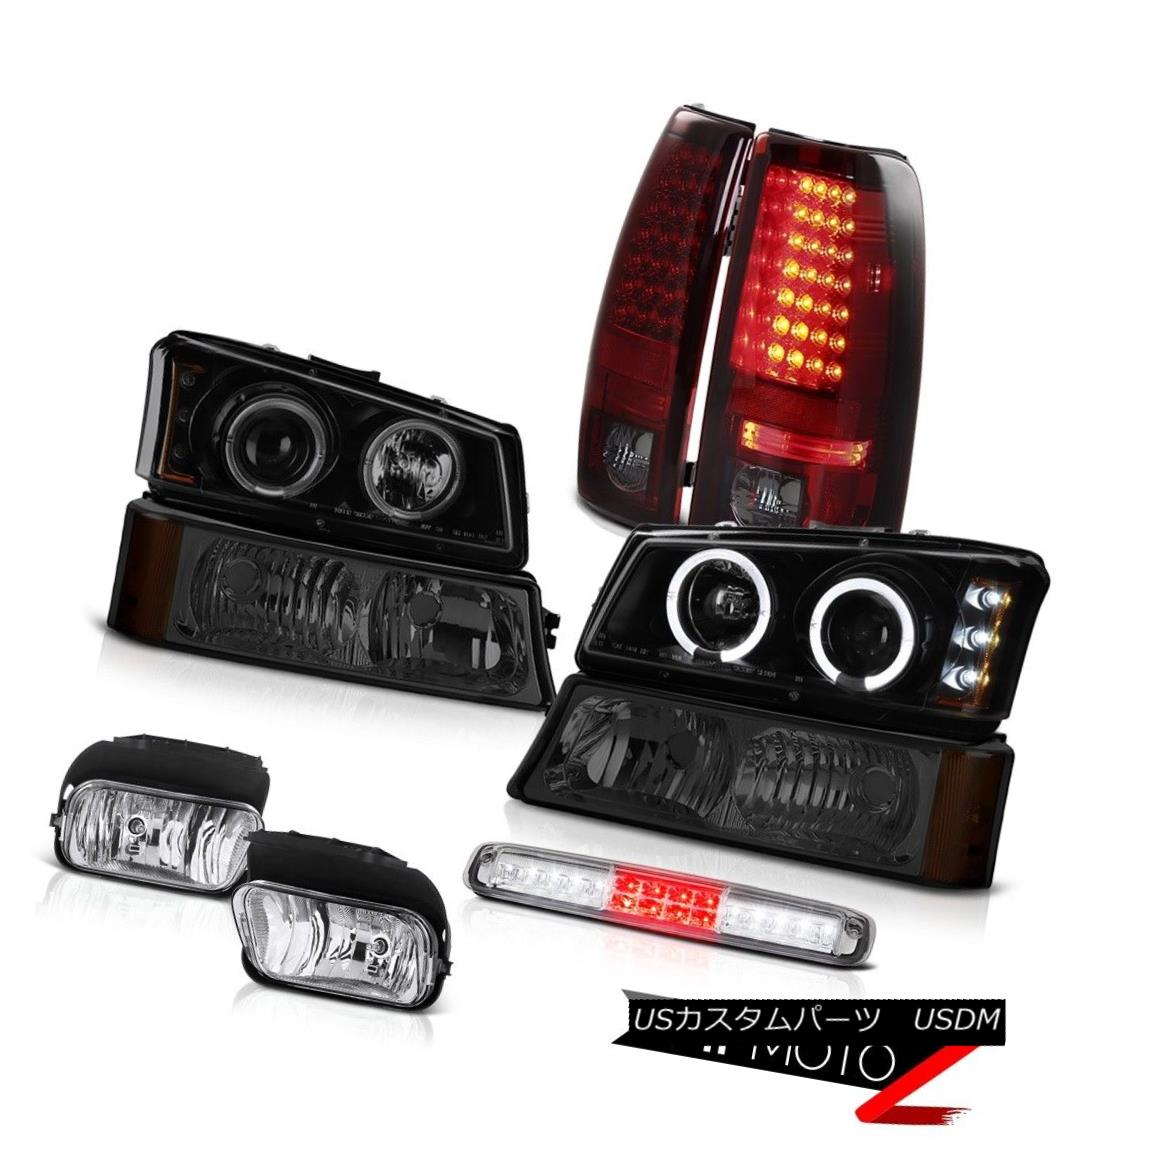 テールライト 2003-2006 Silverado Foglights Bumper Light Third Brake Headlights Taillights 2003-2006 Silverado Foglightsバンパーライトサードブレーキライトヘッドライト